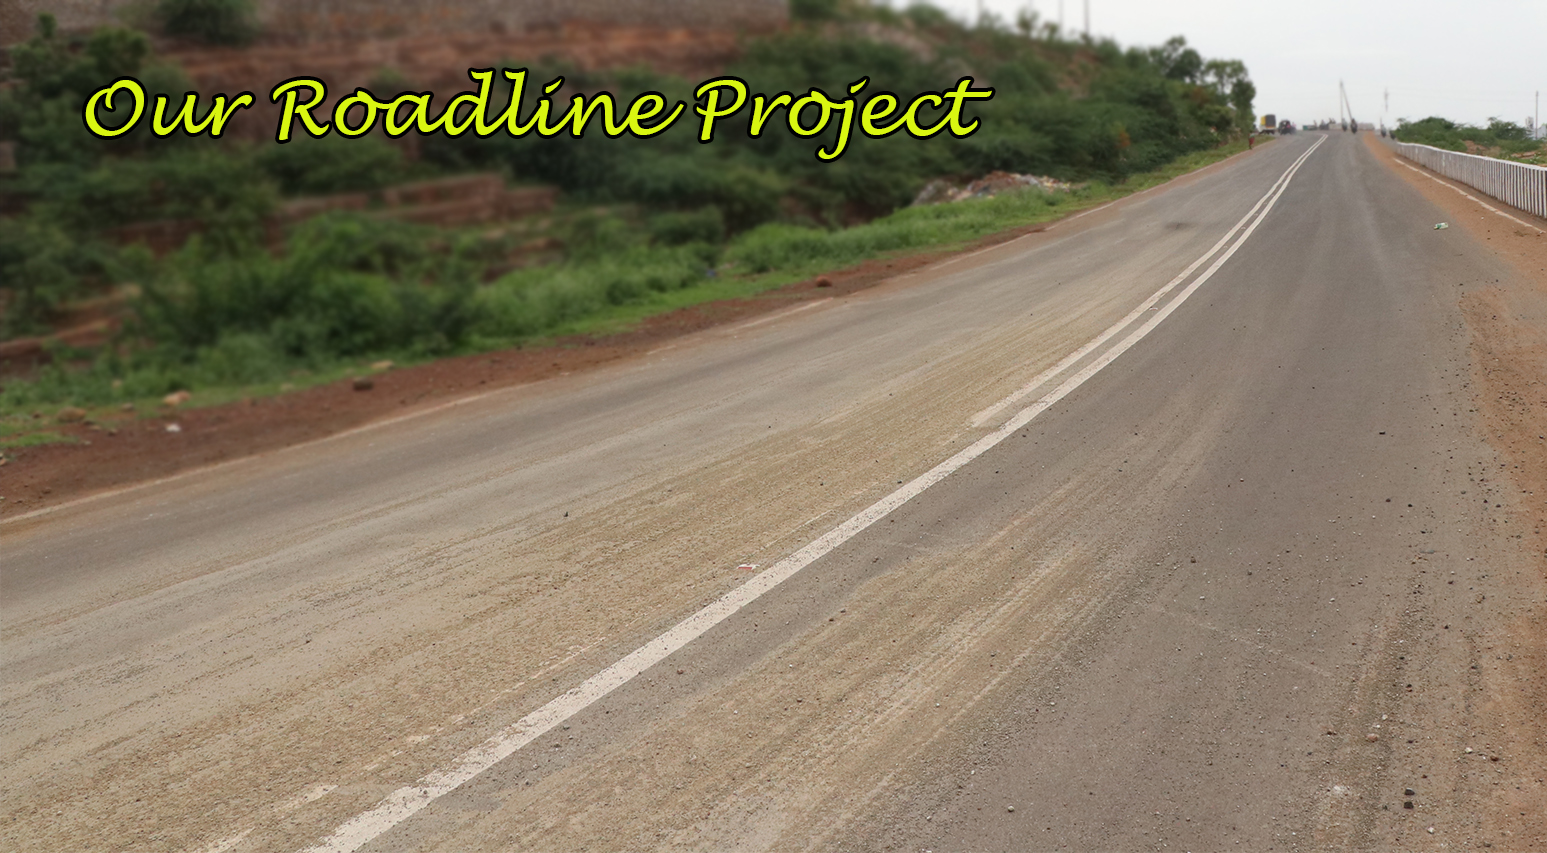 Our Road Lines Project - Pailwan Buildcon Private Limited